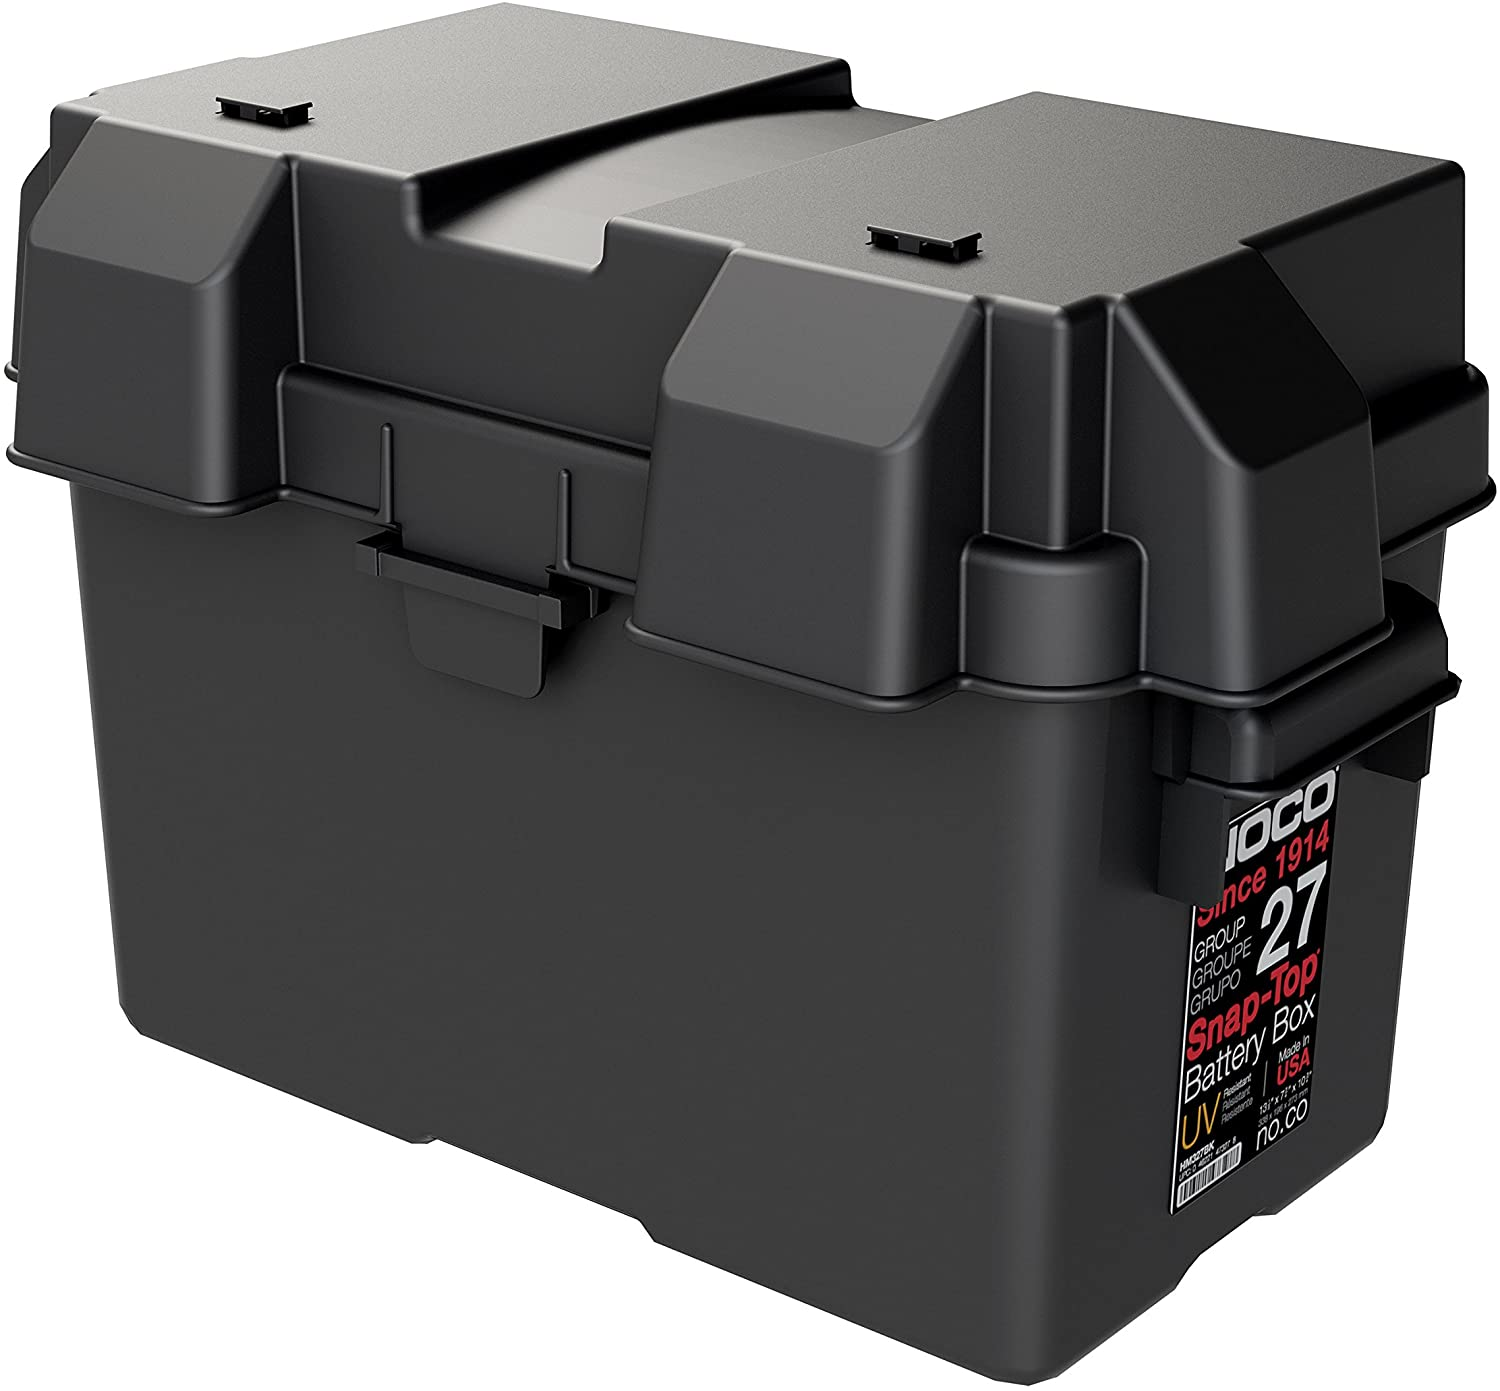 NOCO HM327BKS Group 27 Snap-Top Battery Box For RV, Camper And Trailer Batteries